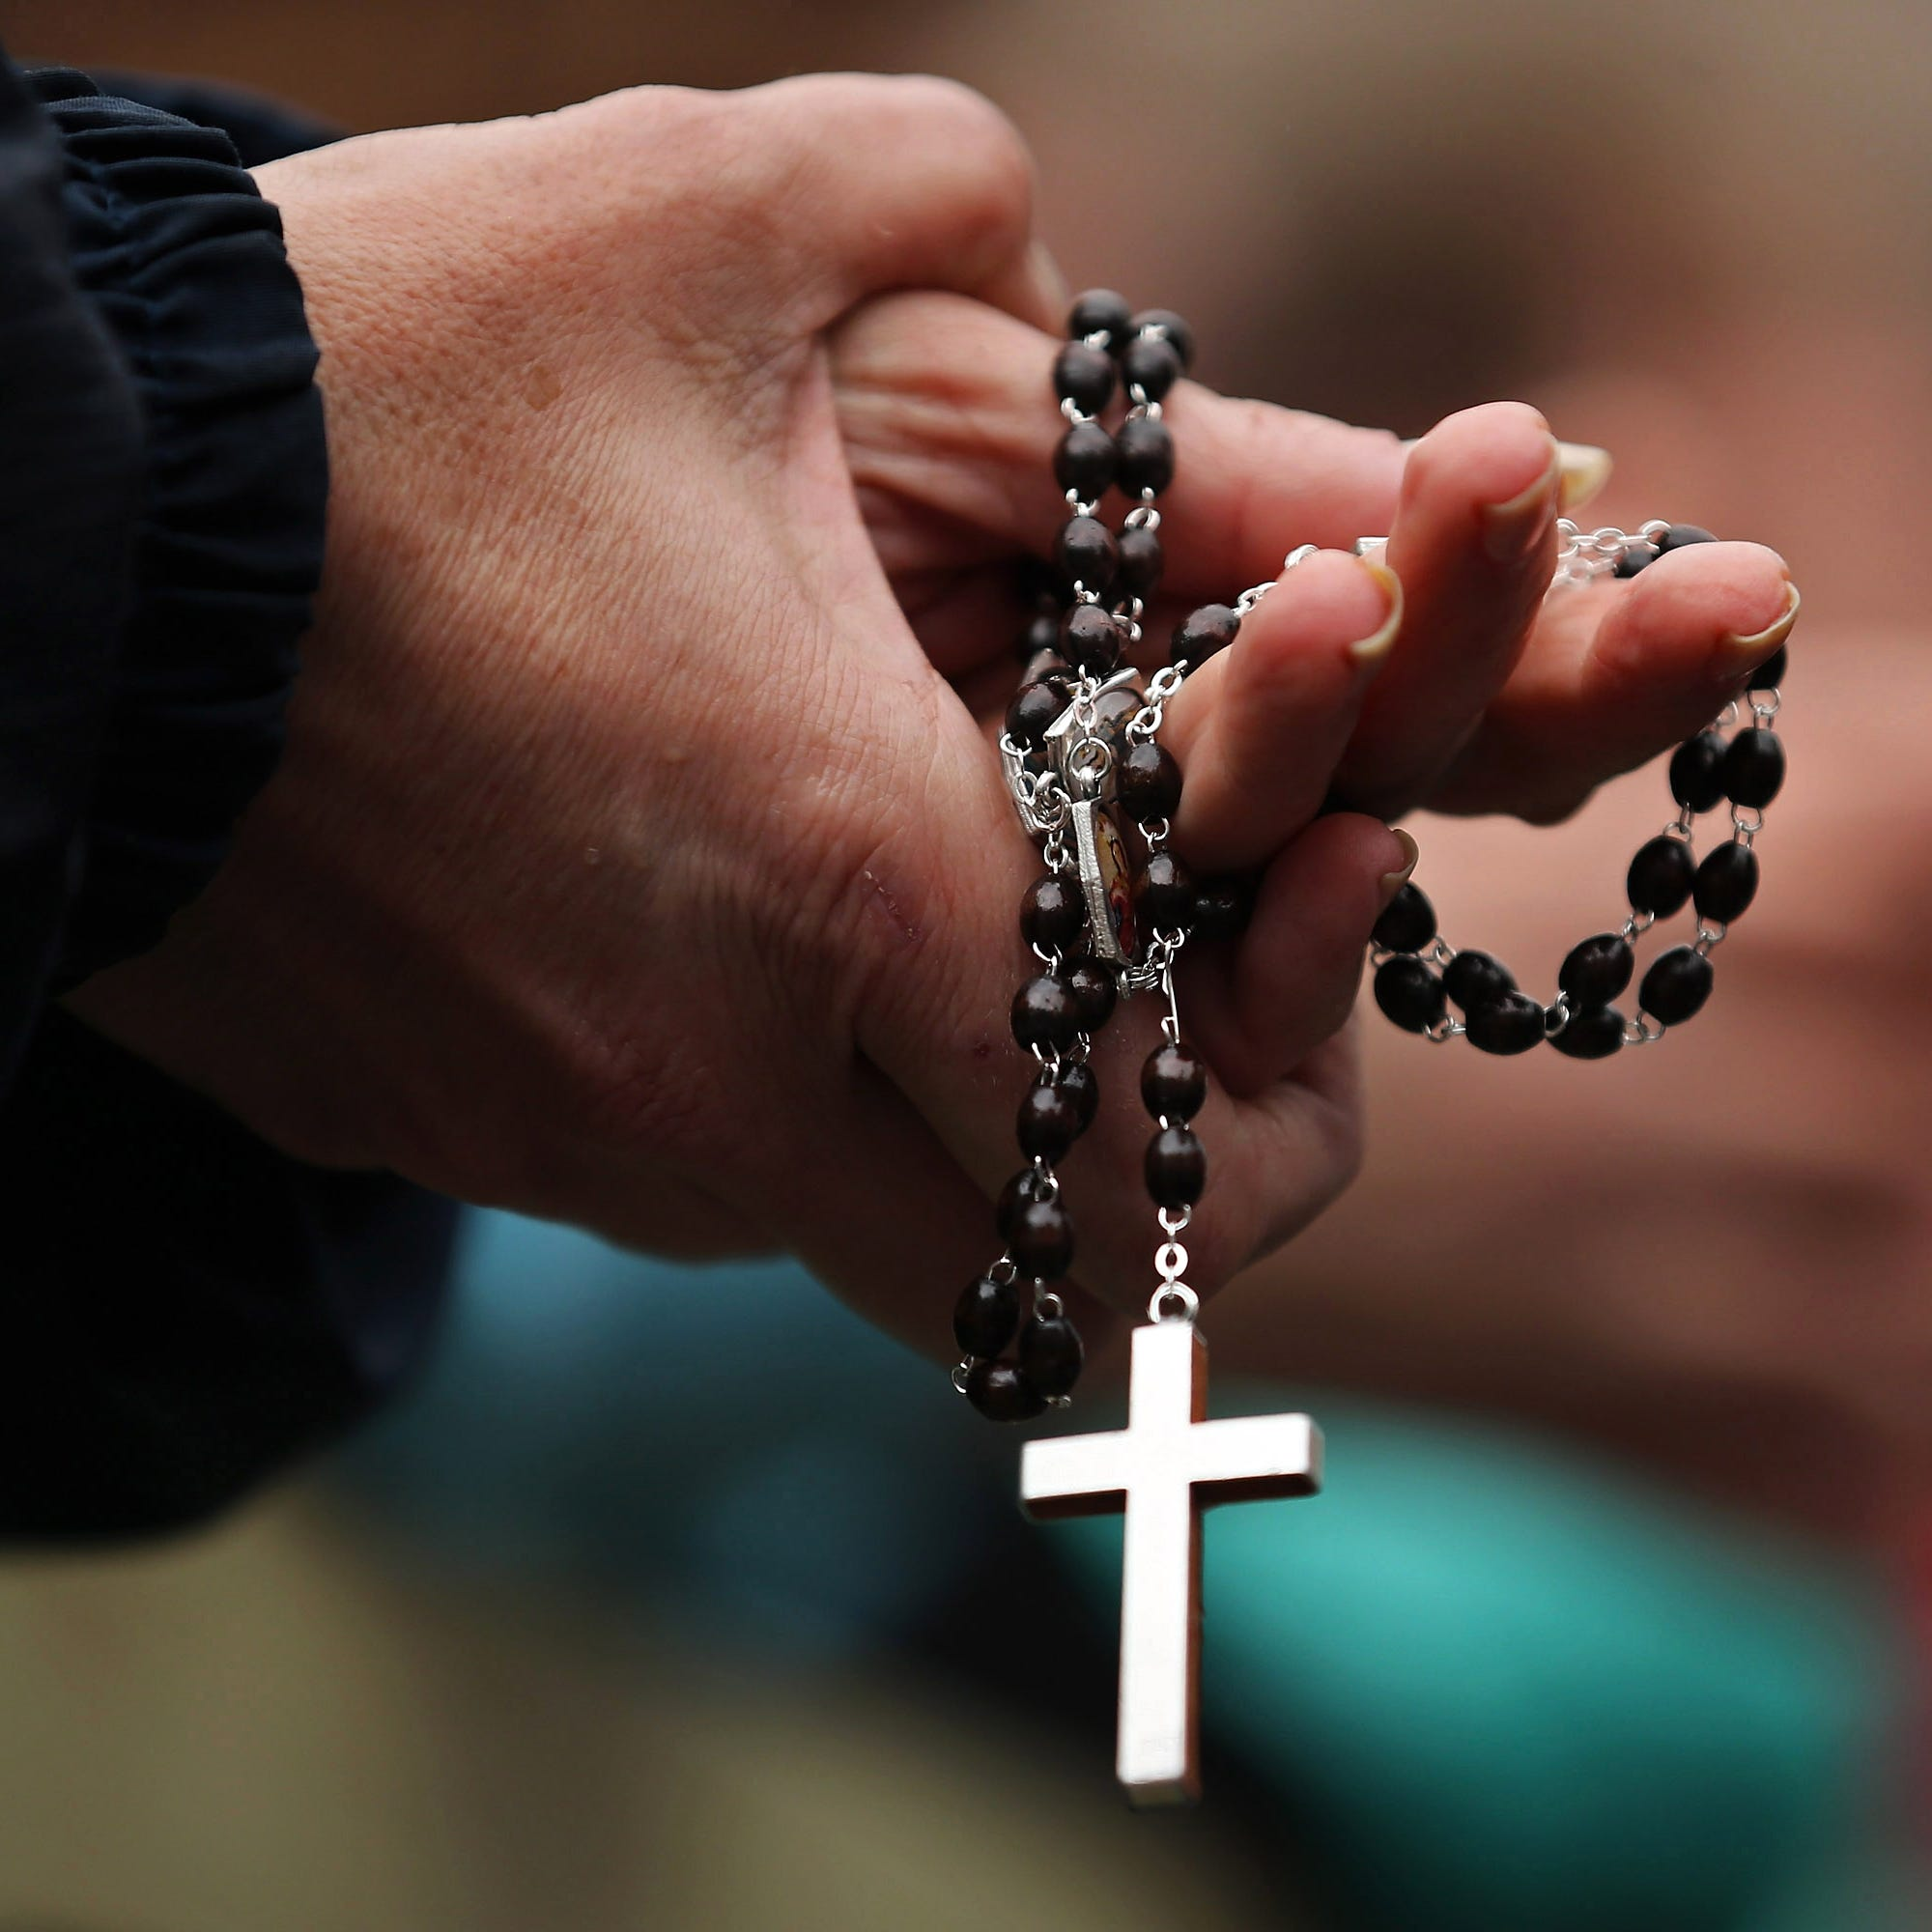 Nashville Roman Catholic Church leaders have remained silent in the face of abuse | Opinion